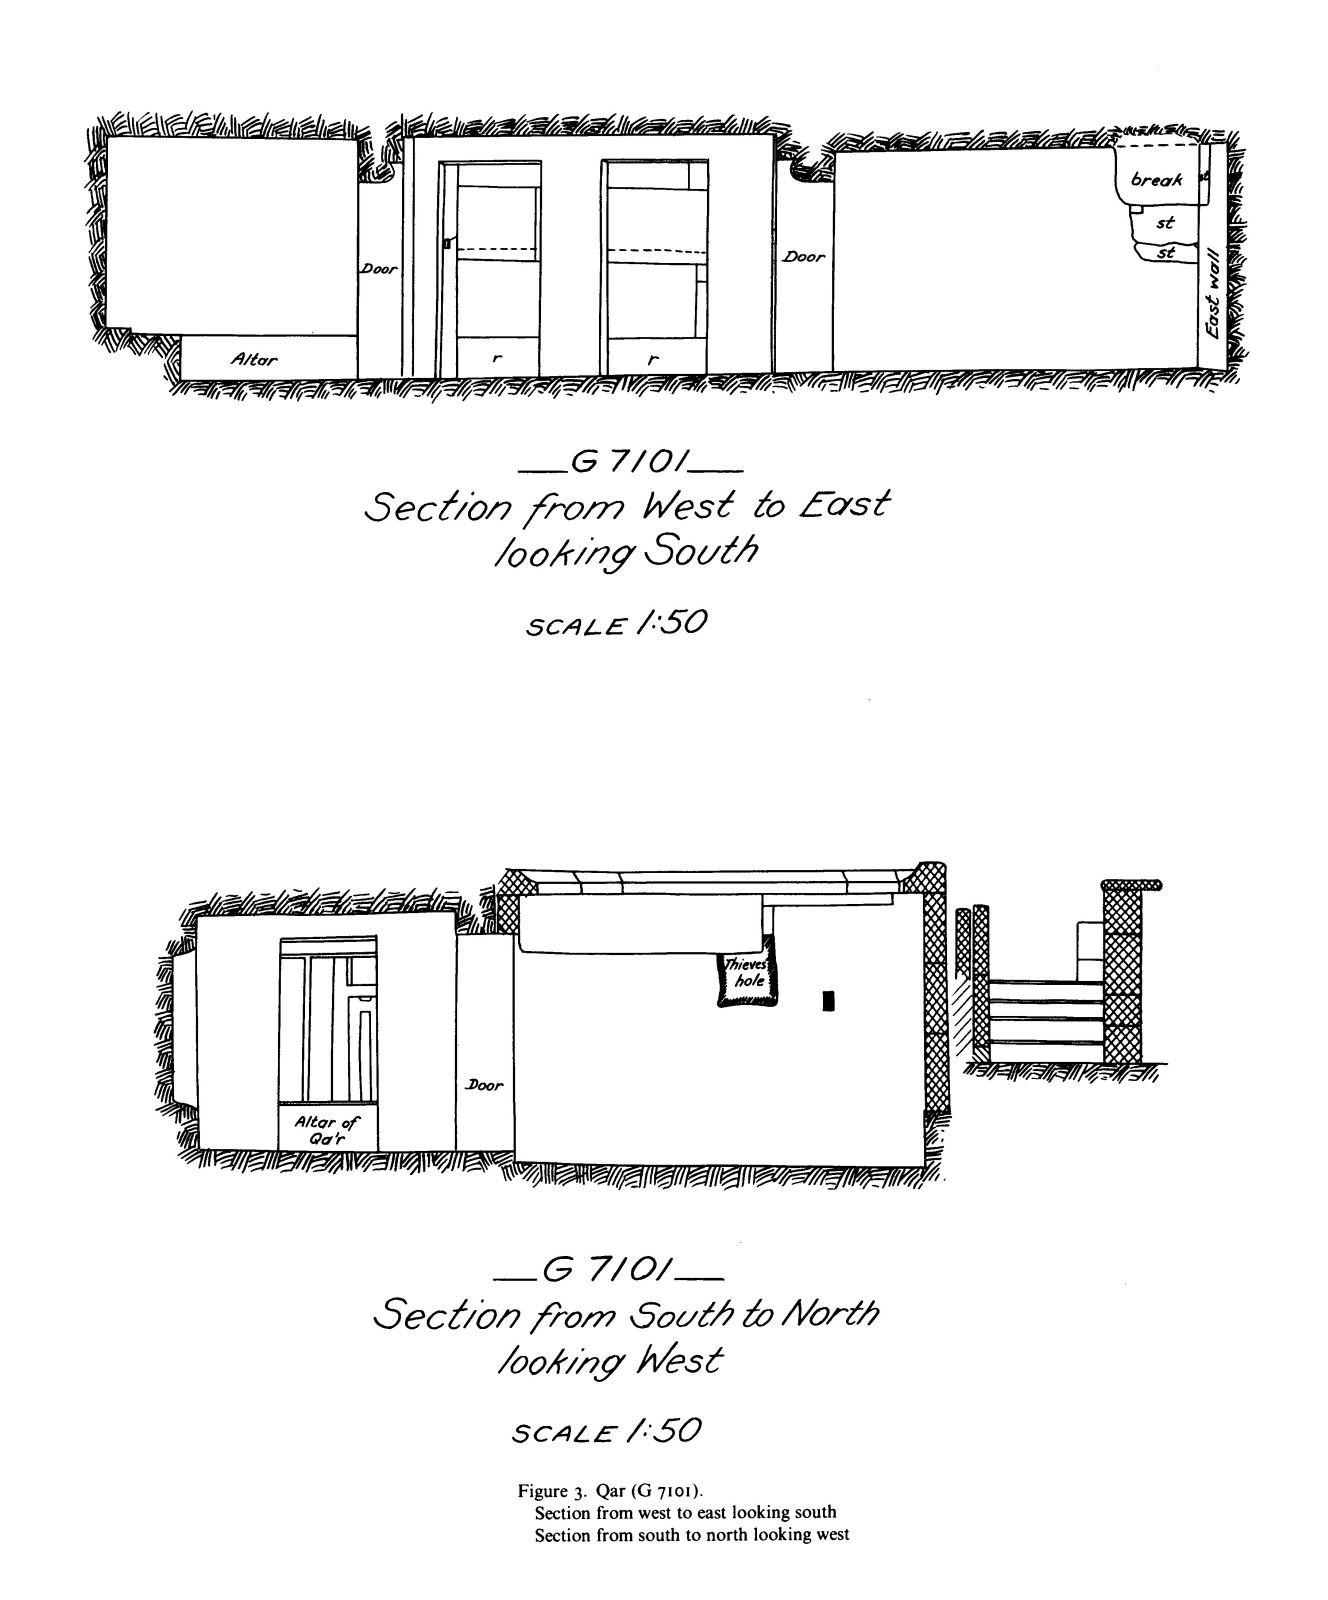 Maps and plans: G 7101, Sections